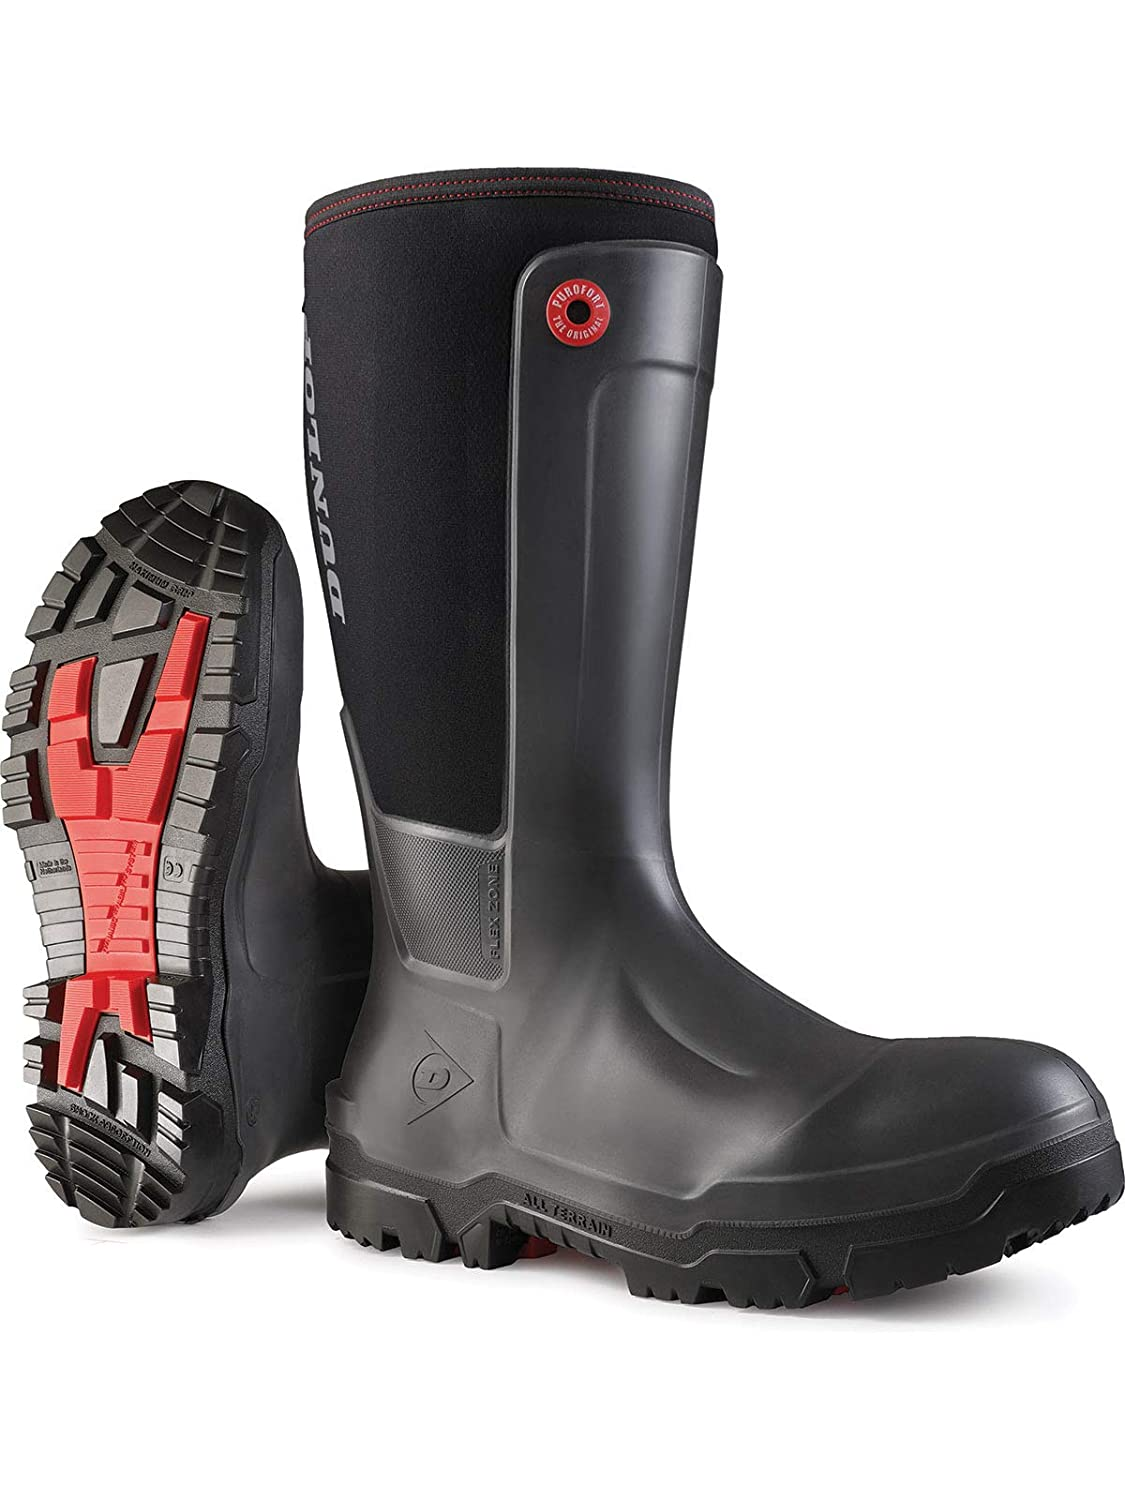 Dunlop NE68A9313 Snugboot WorkPro Full Co Safety Protective Trust with Max 84% OFF